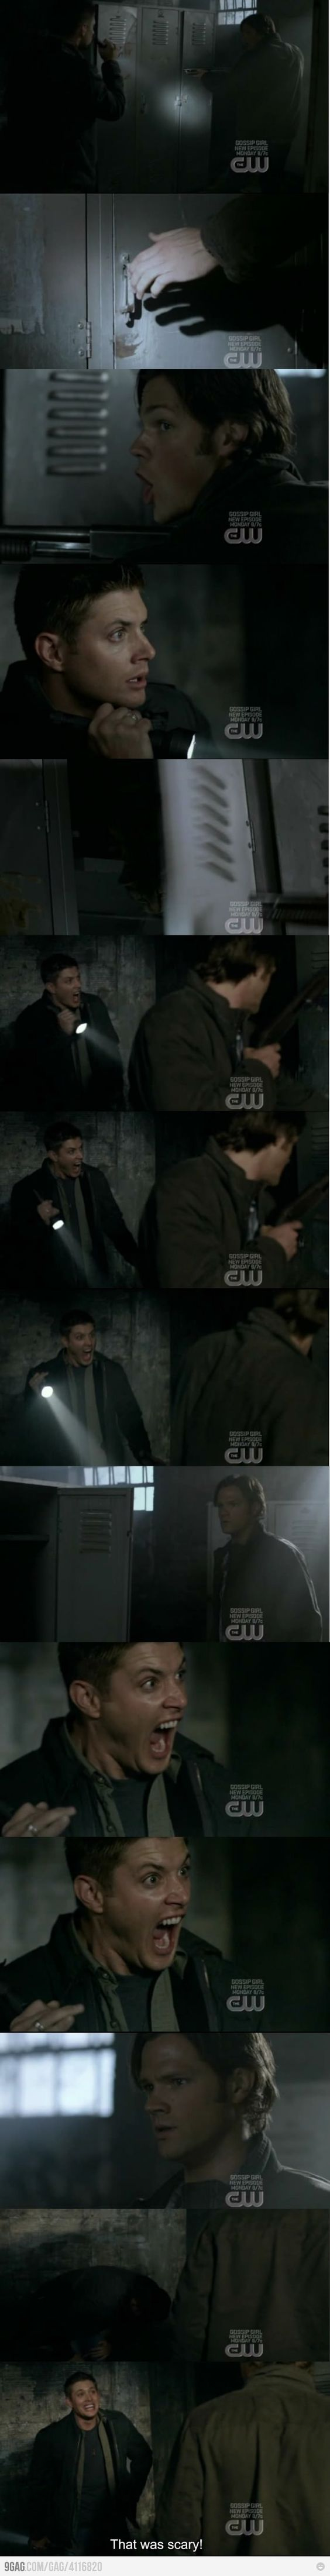 """Oh Dean! The way he screams, and the expression on his face, was the best! -Season 4, Episode 6, """"Yellow Fever"""""""